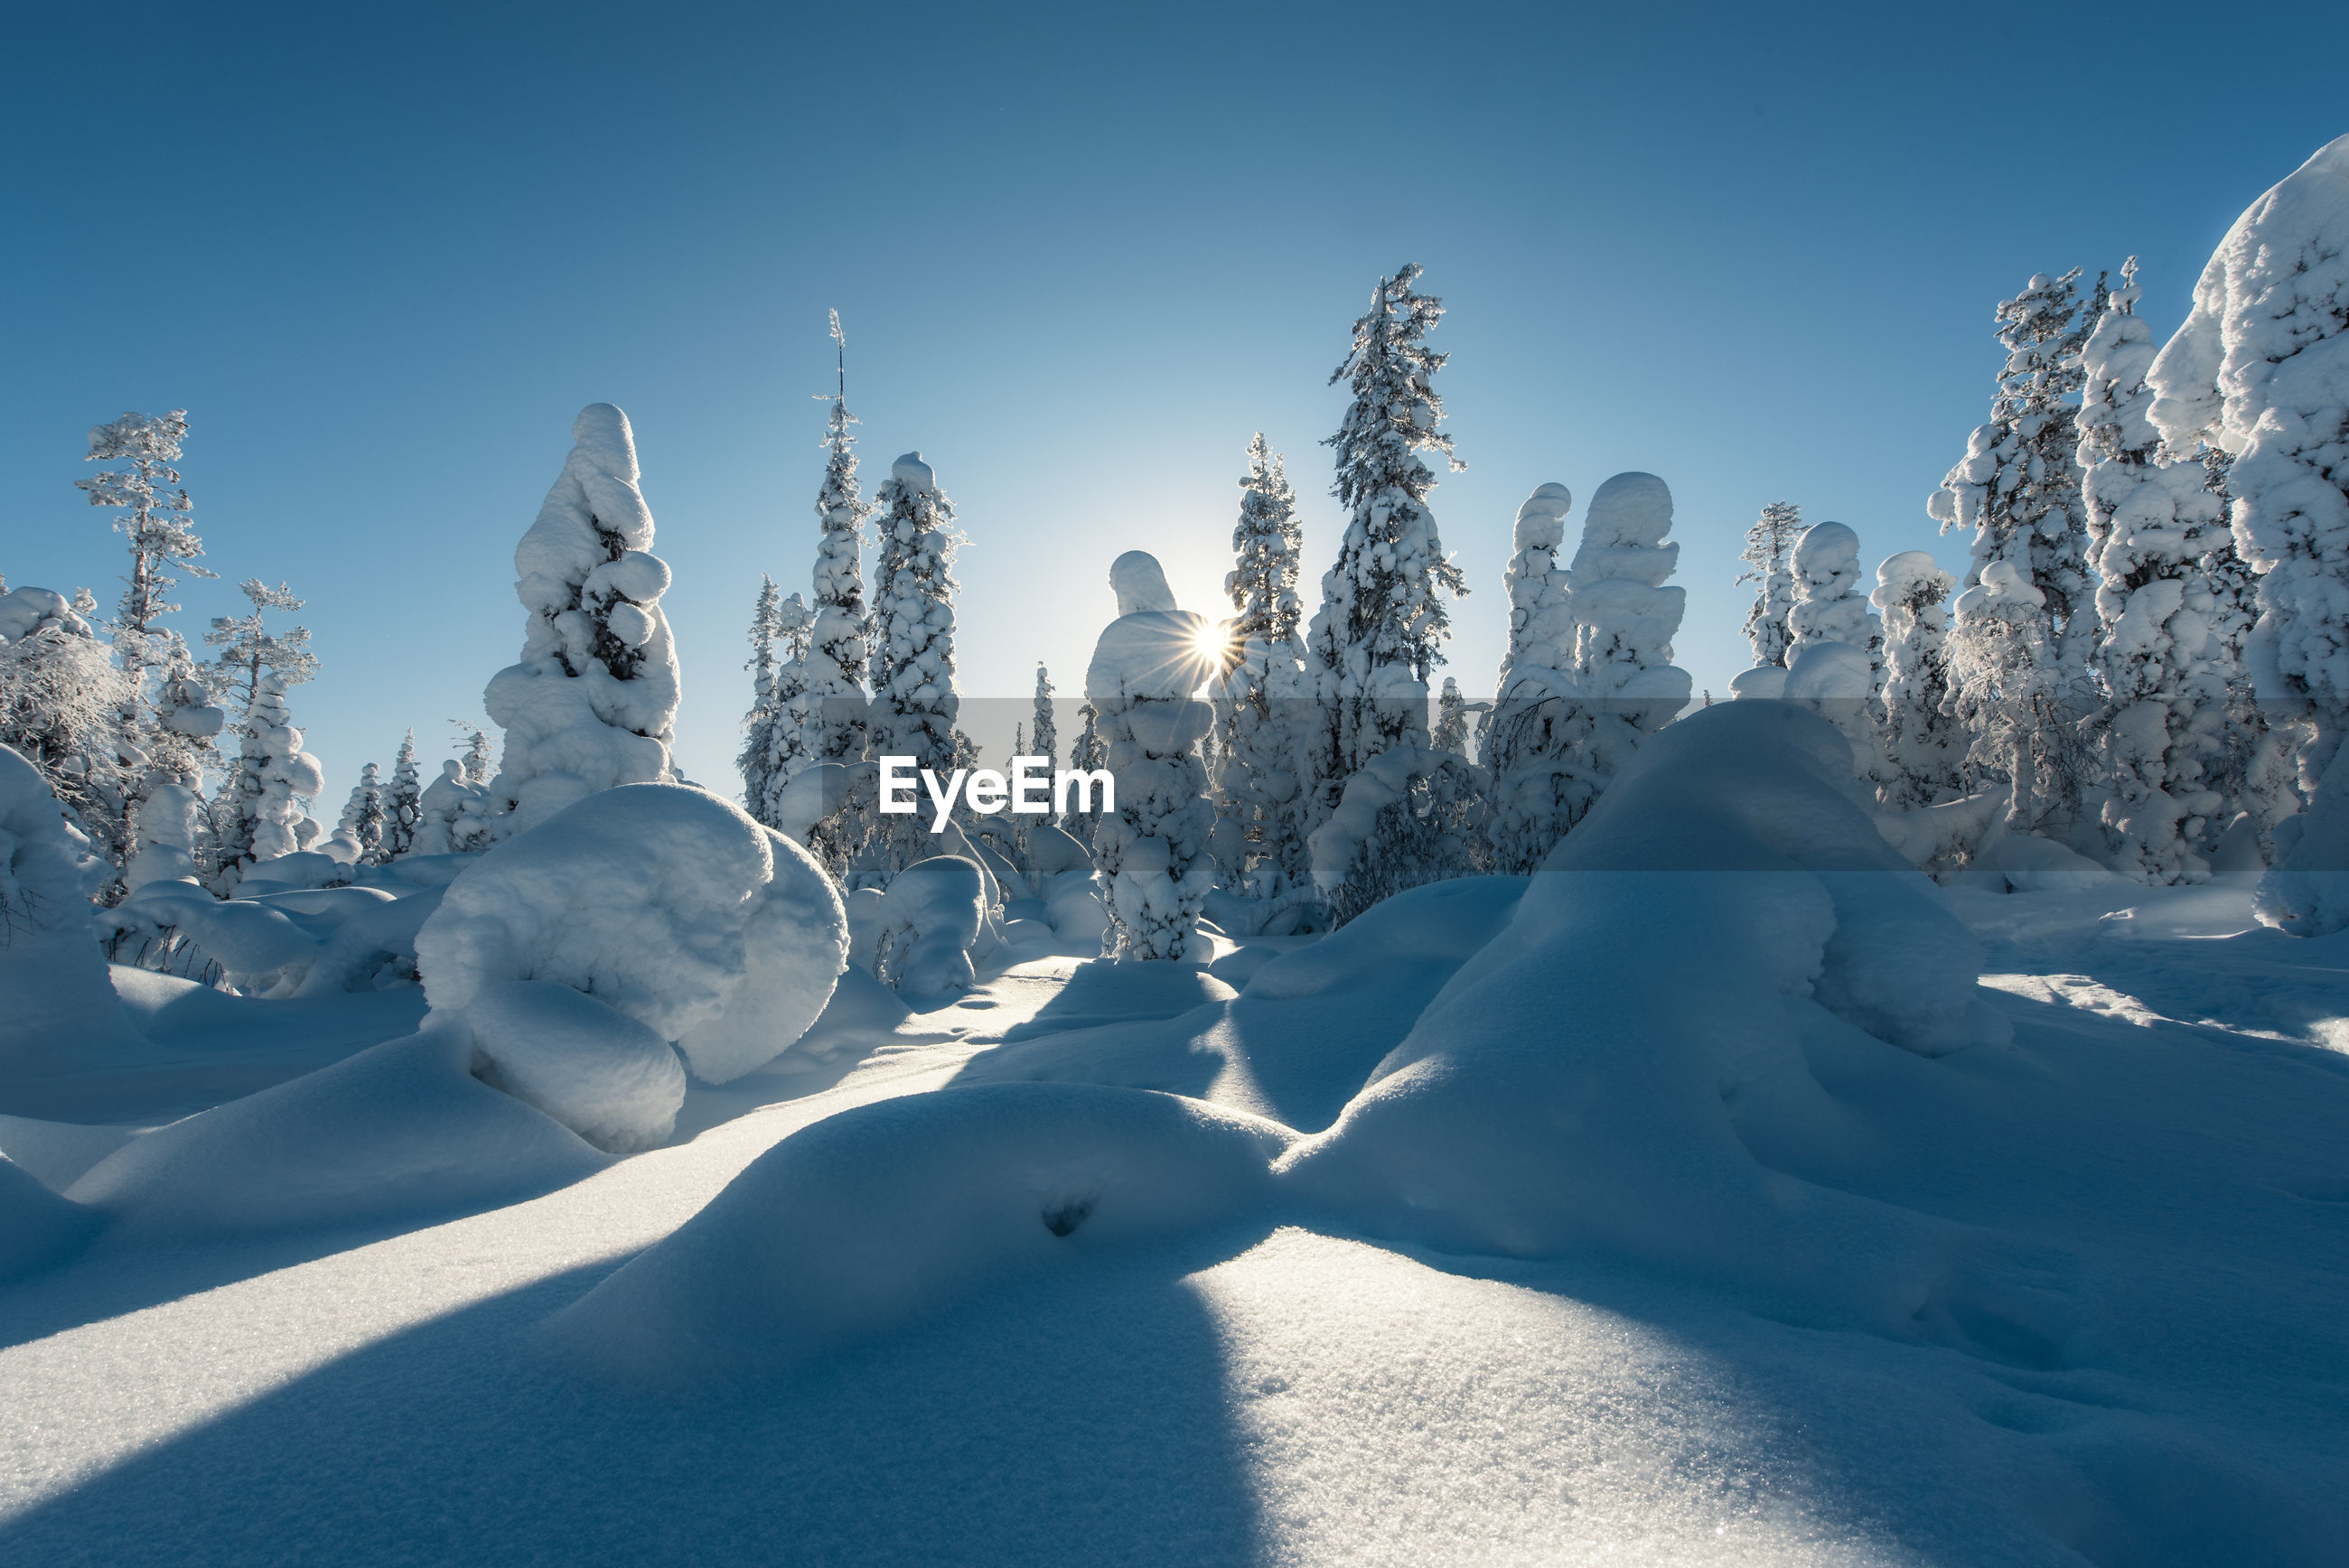 Scenic view of snow covered trees against clear blue sky in forest